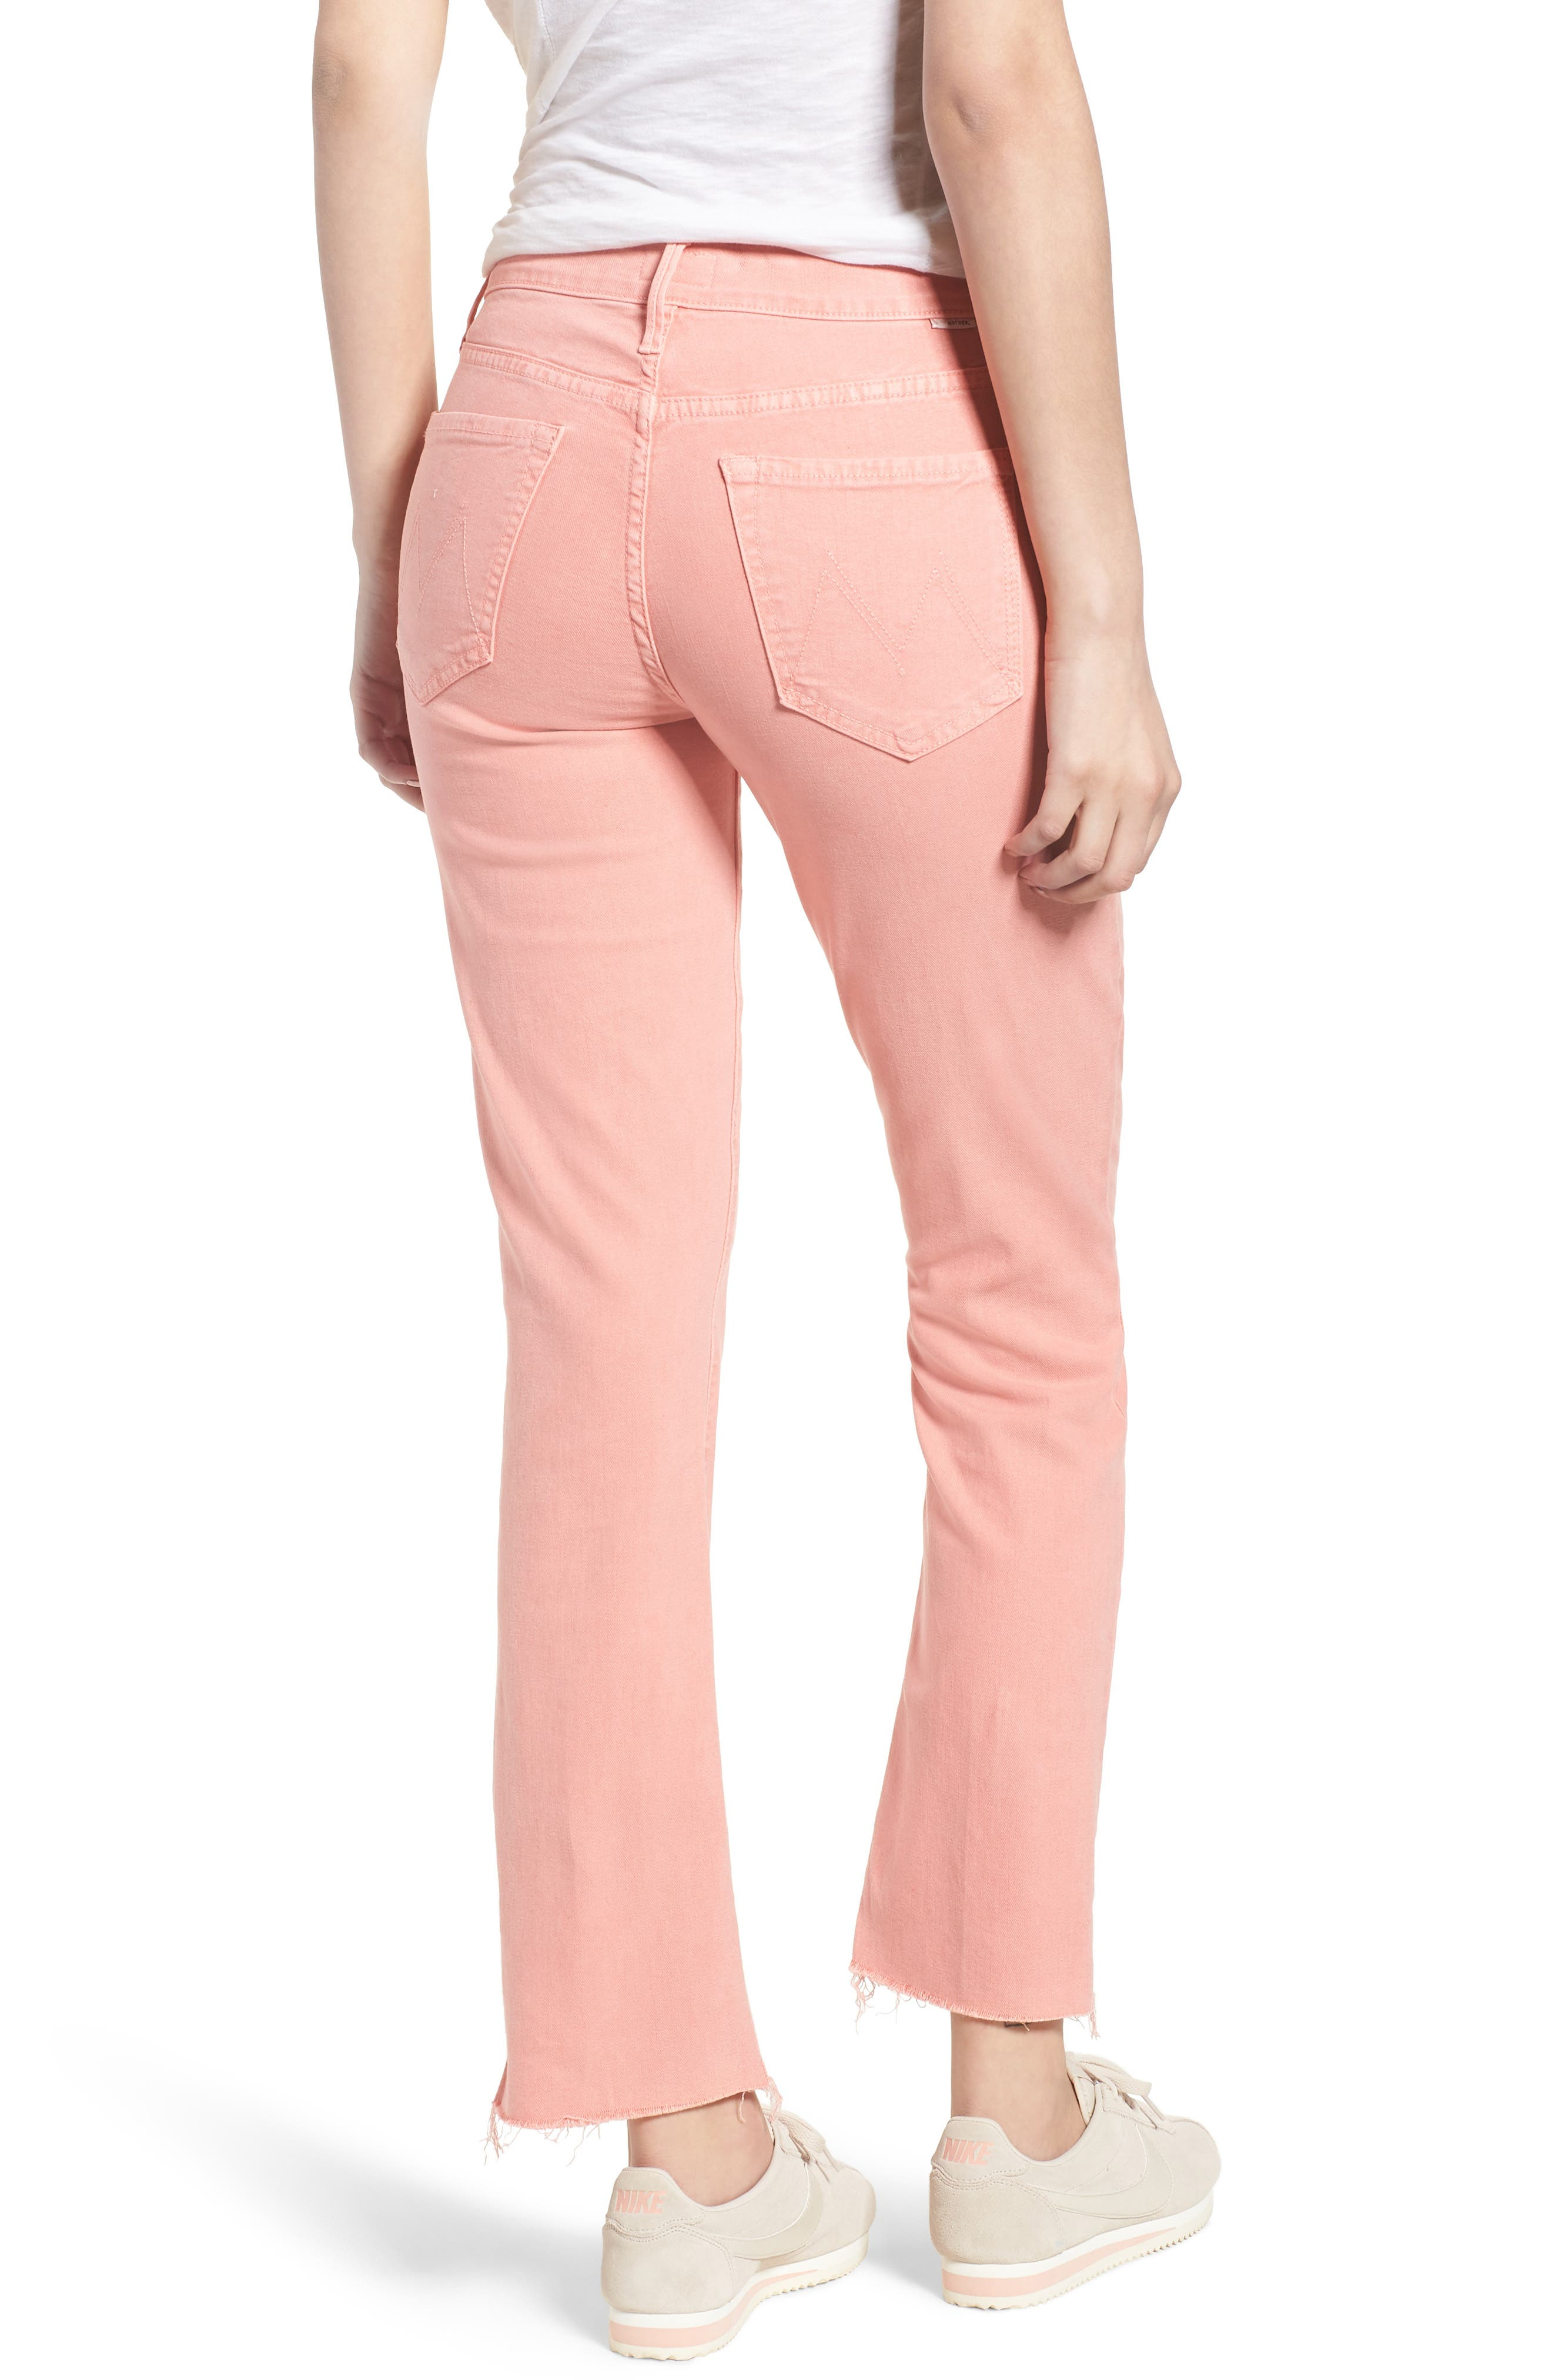 The Rascal Ankle Snippet Jeans,                             Alternate thumbnail 2, color,                             Dusty Pink